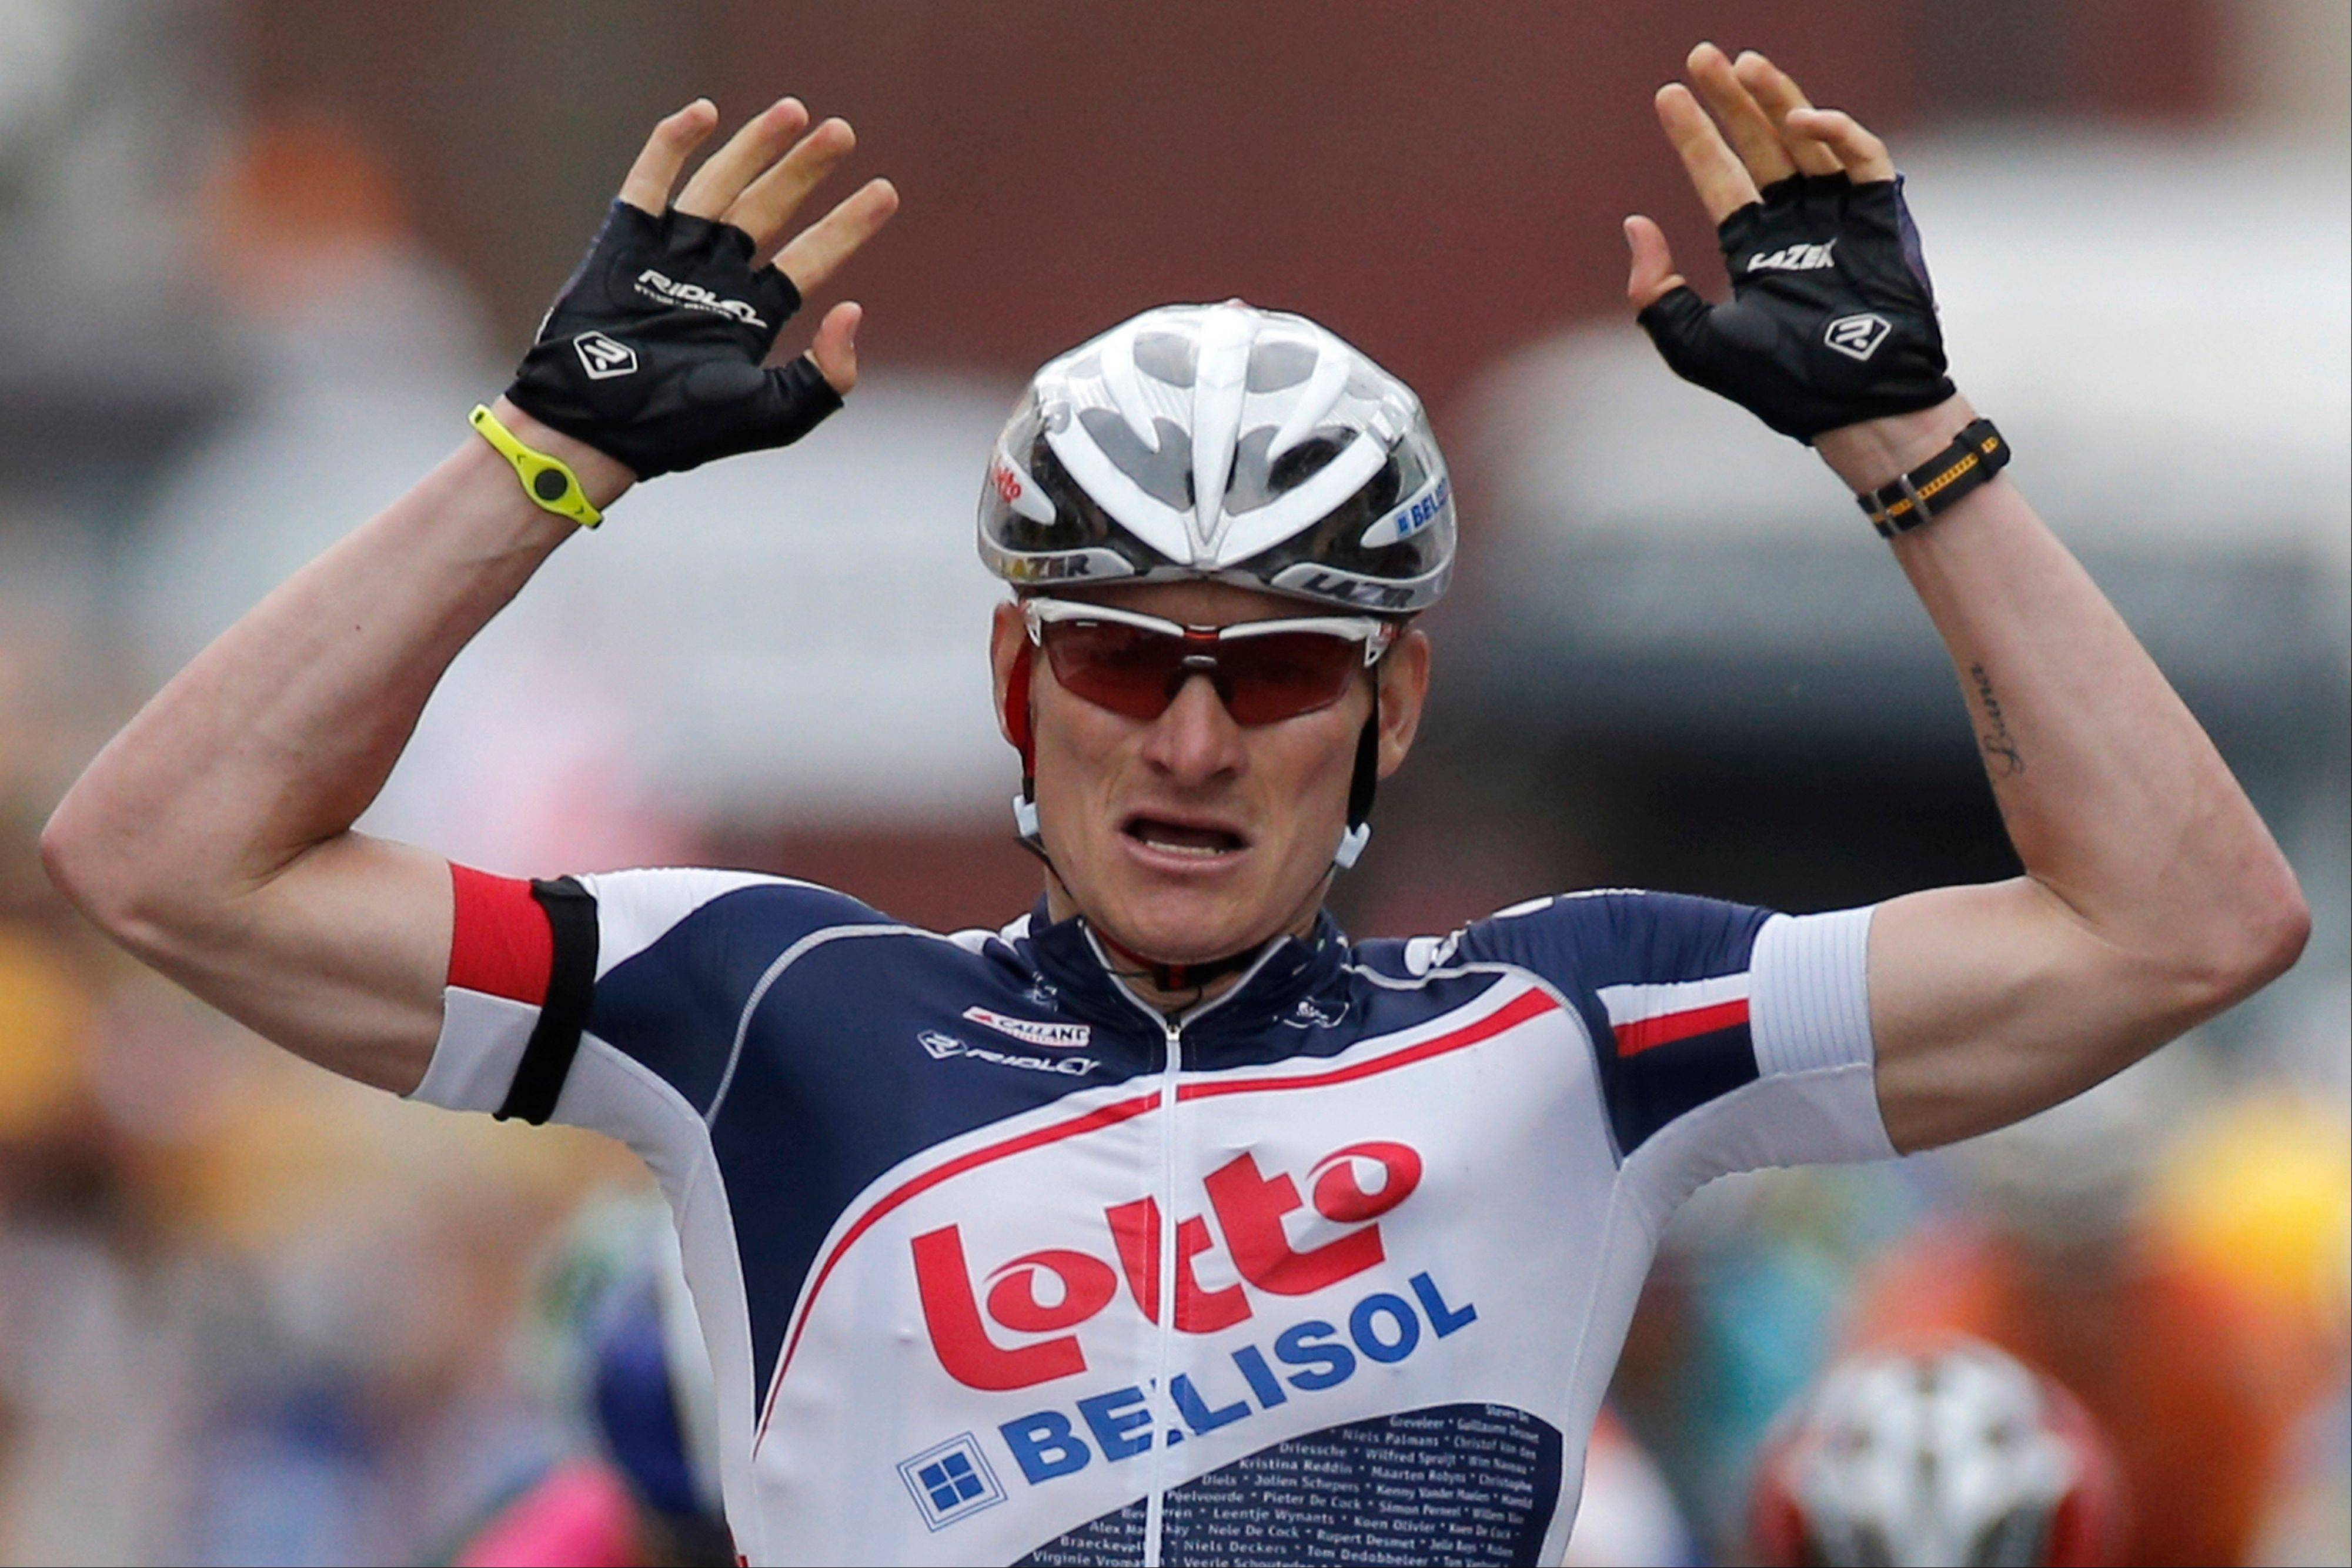 Andre Greipel crosses the finish line Thursday to win the fifth stage of the Tour de France.